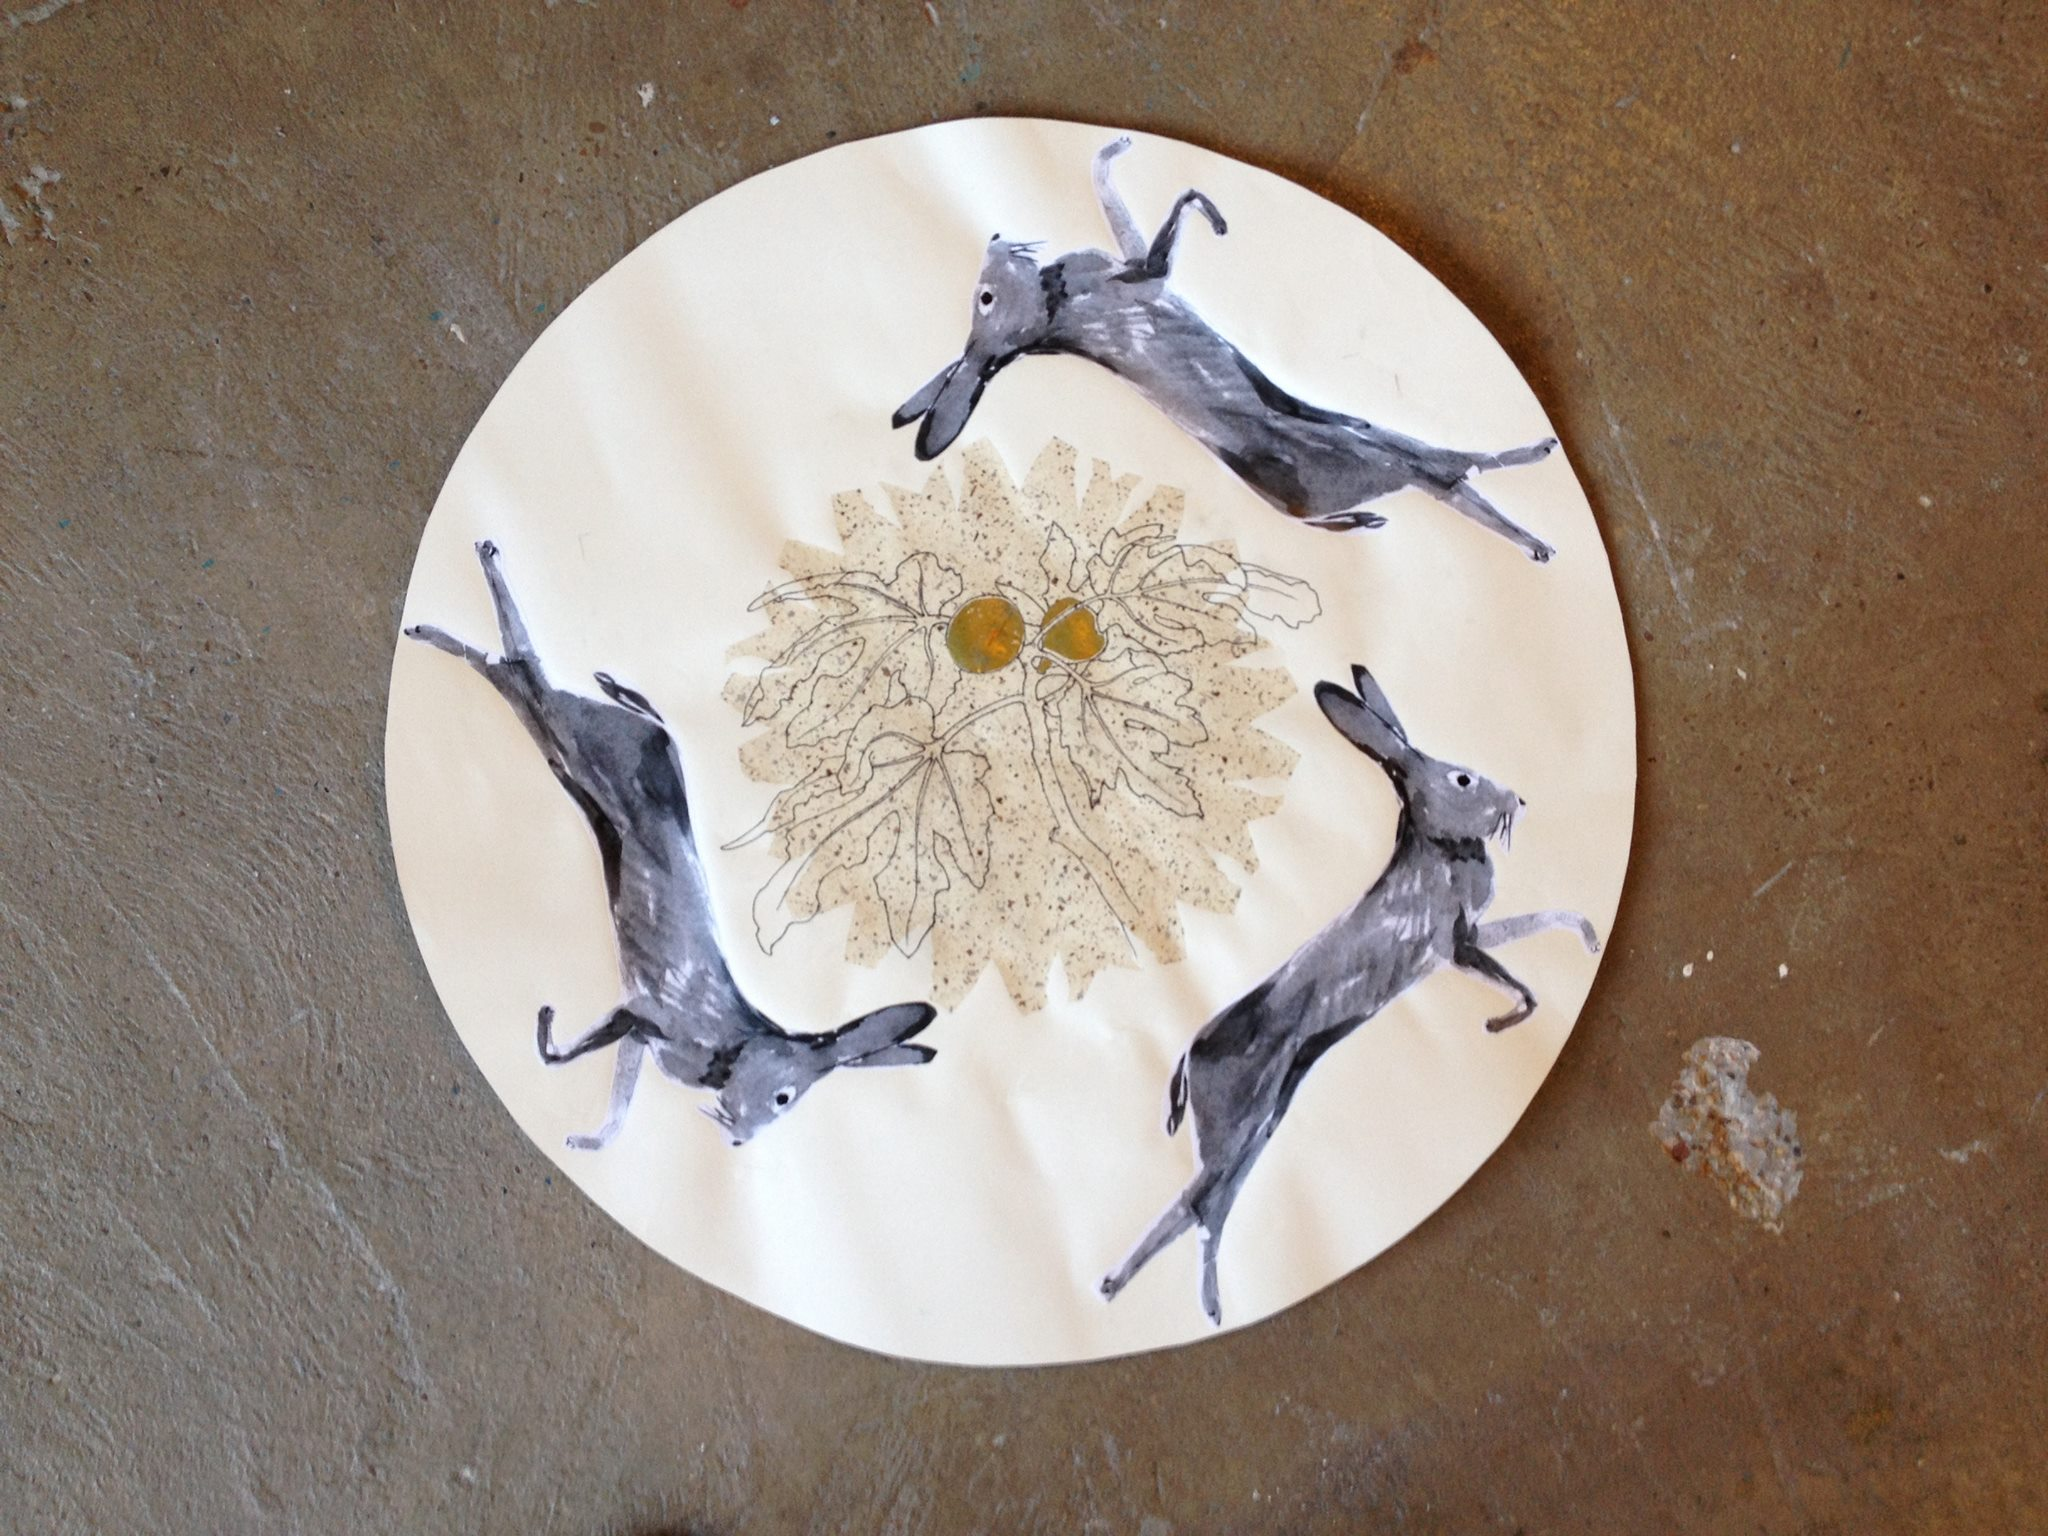 Jack rabbits with Figs, Deborah Mersky and Carol Ivey mixed media collaboration